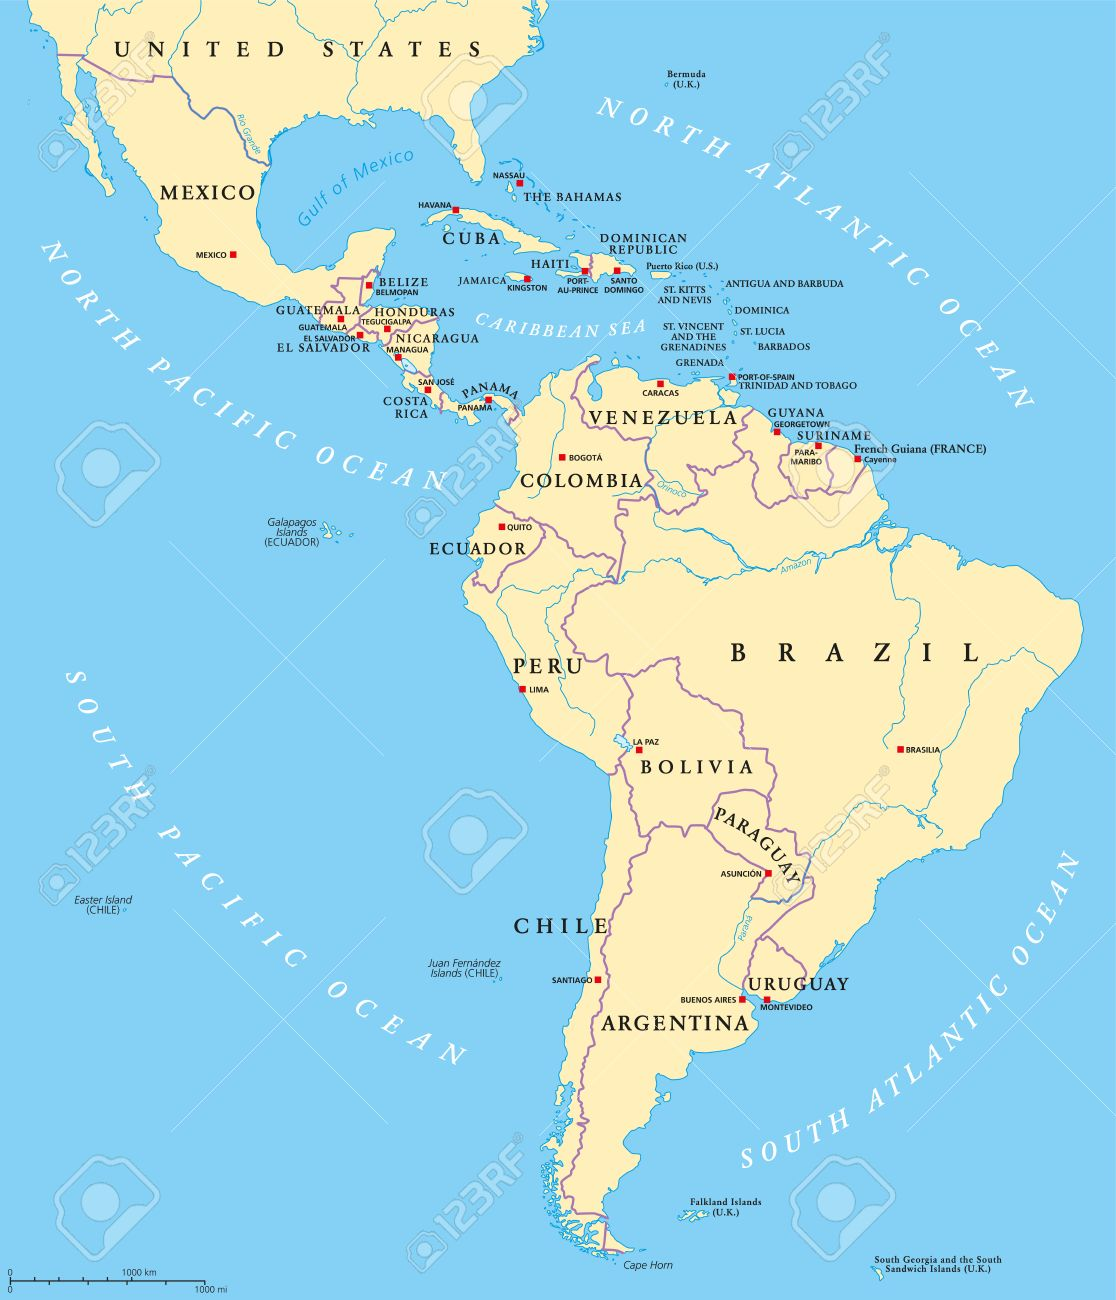 Map Of North America With Rivers And Lakes.Latin America Political Map With Capitals National Borders